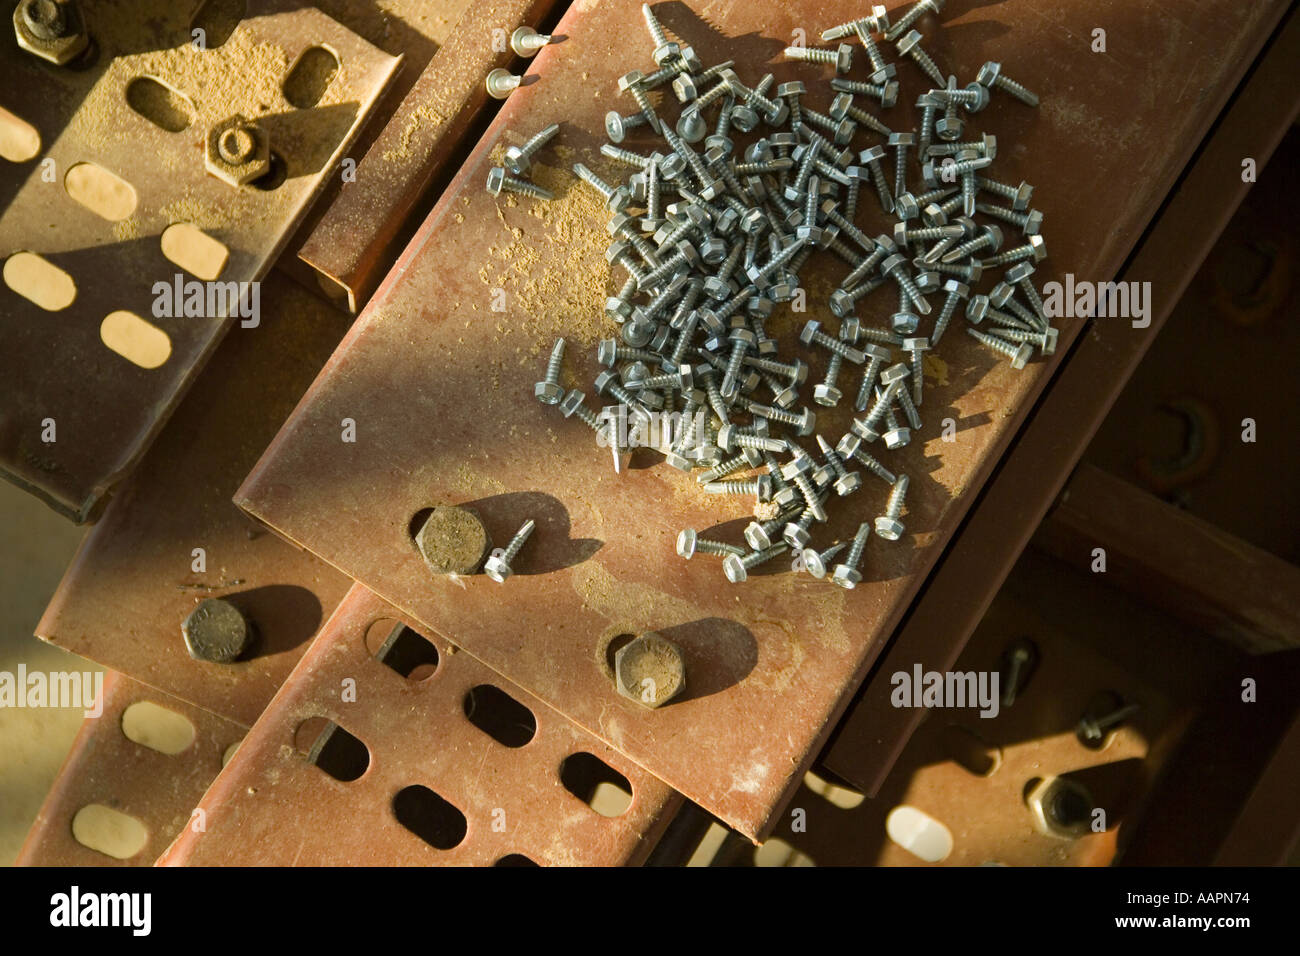 Steel building materials recycle energy comodities cunstruction - Stock Image